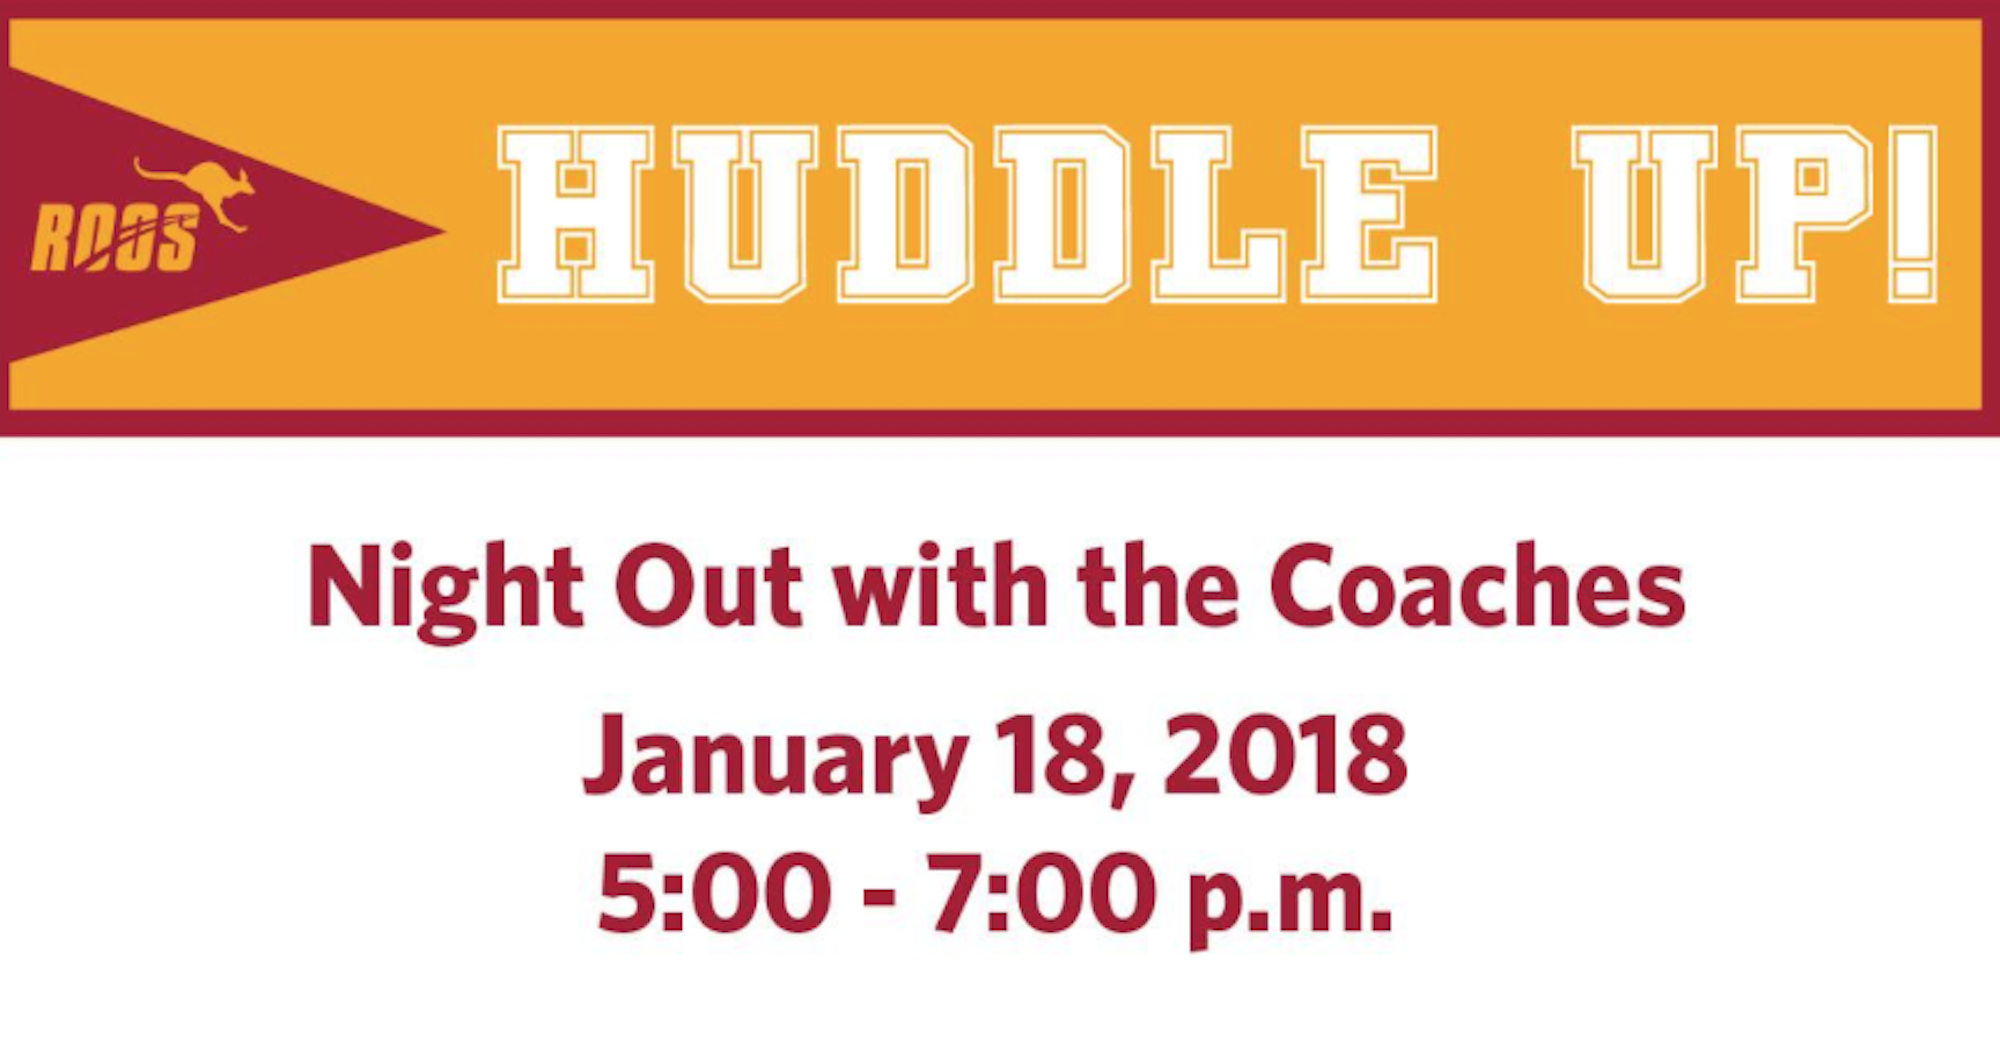 Huddle Up with the Austin College Coaches in San Antonio!